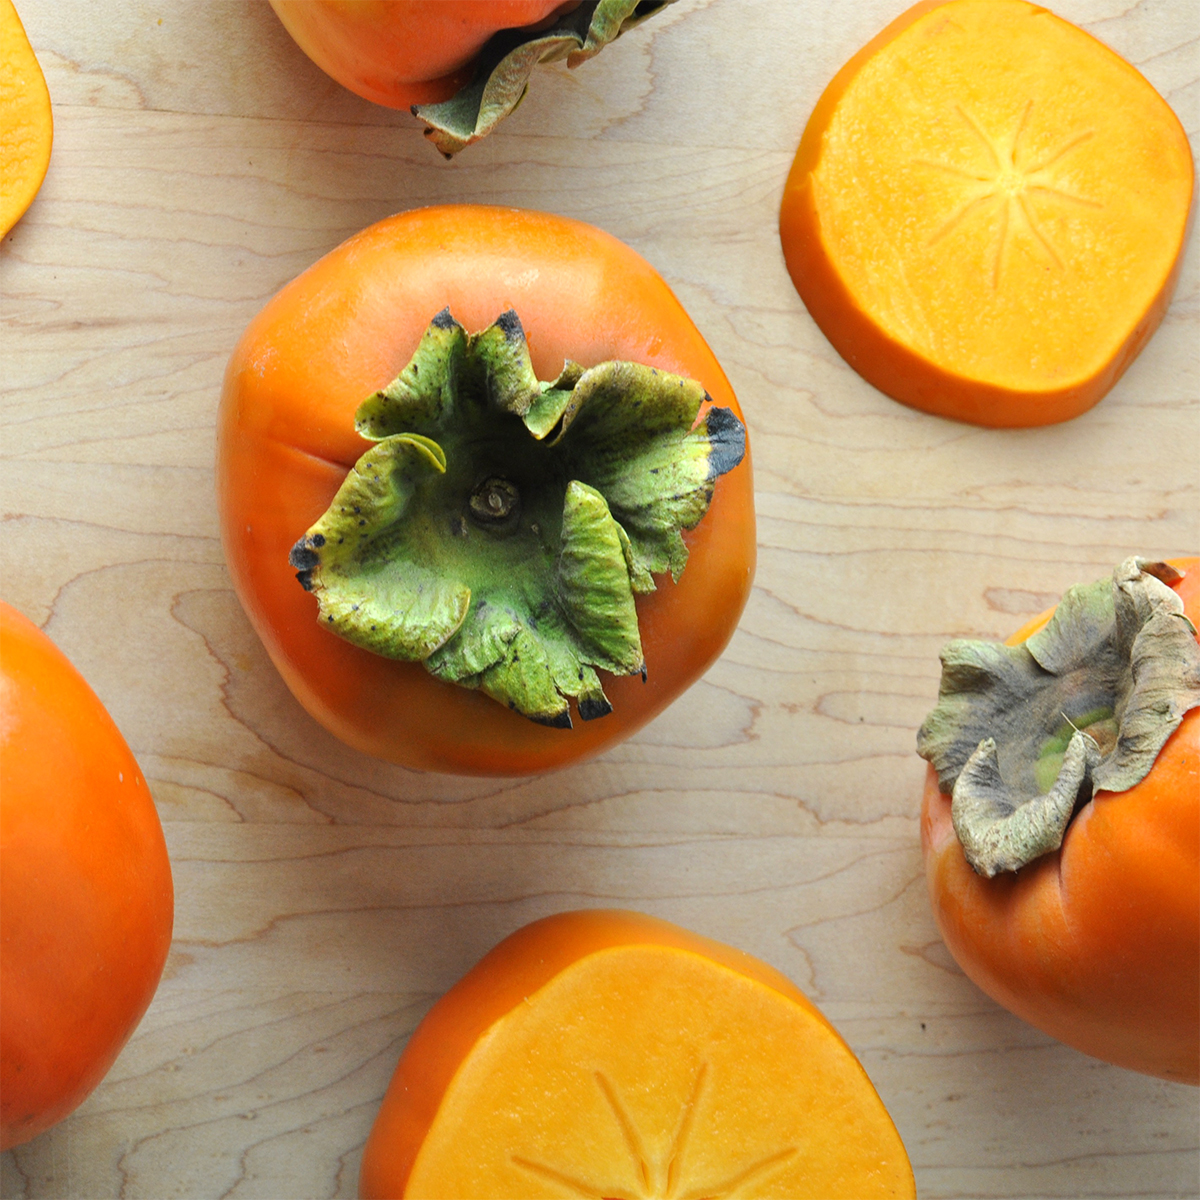 What is the difference between Persimmon and Korolk